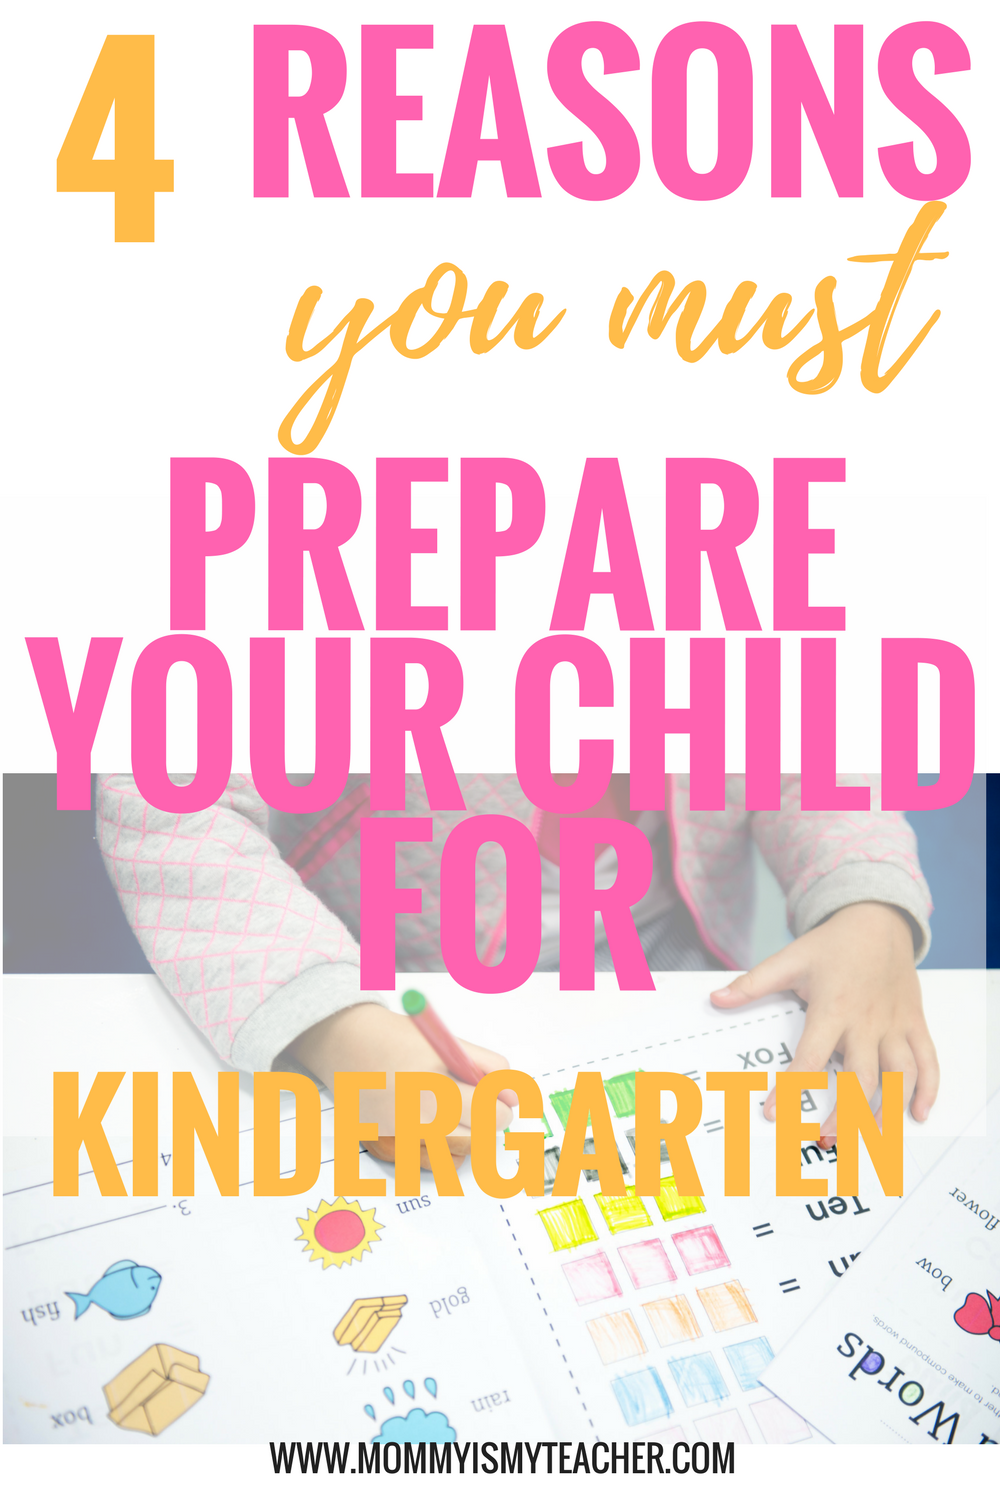 Wow, I didn't even know that kindergarten readiness skills was so important! I'm going to make sure that I do preschool activities at home with my son to prepare him for kindergarten readiness assessments. pinning for later!